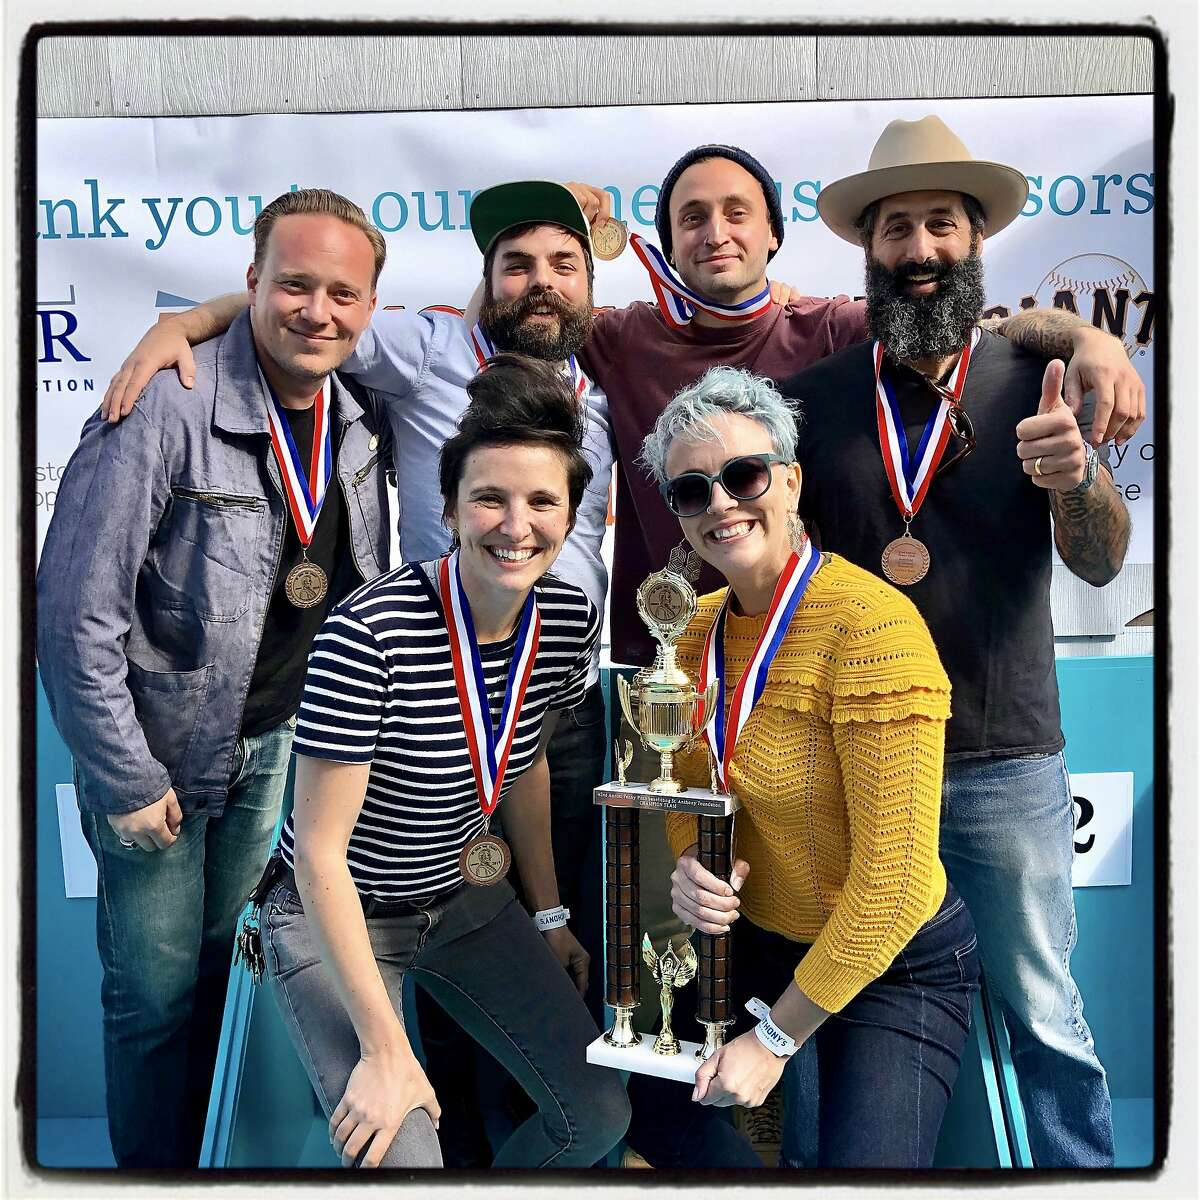 Team Good Livers triumphed at the Penny Pitch (back row, from left): Morgan Schick, Matthew Robert Melle, Alfie Spears and Josh Harris with Caitie Connolly (left) and Rebecca Pinnell. Oct. 18, 2019.